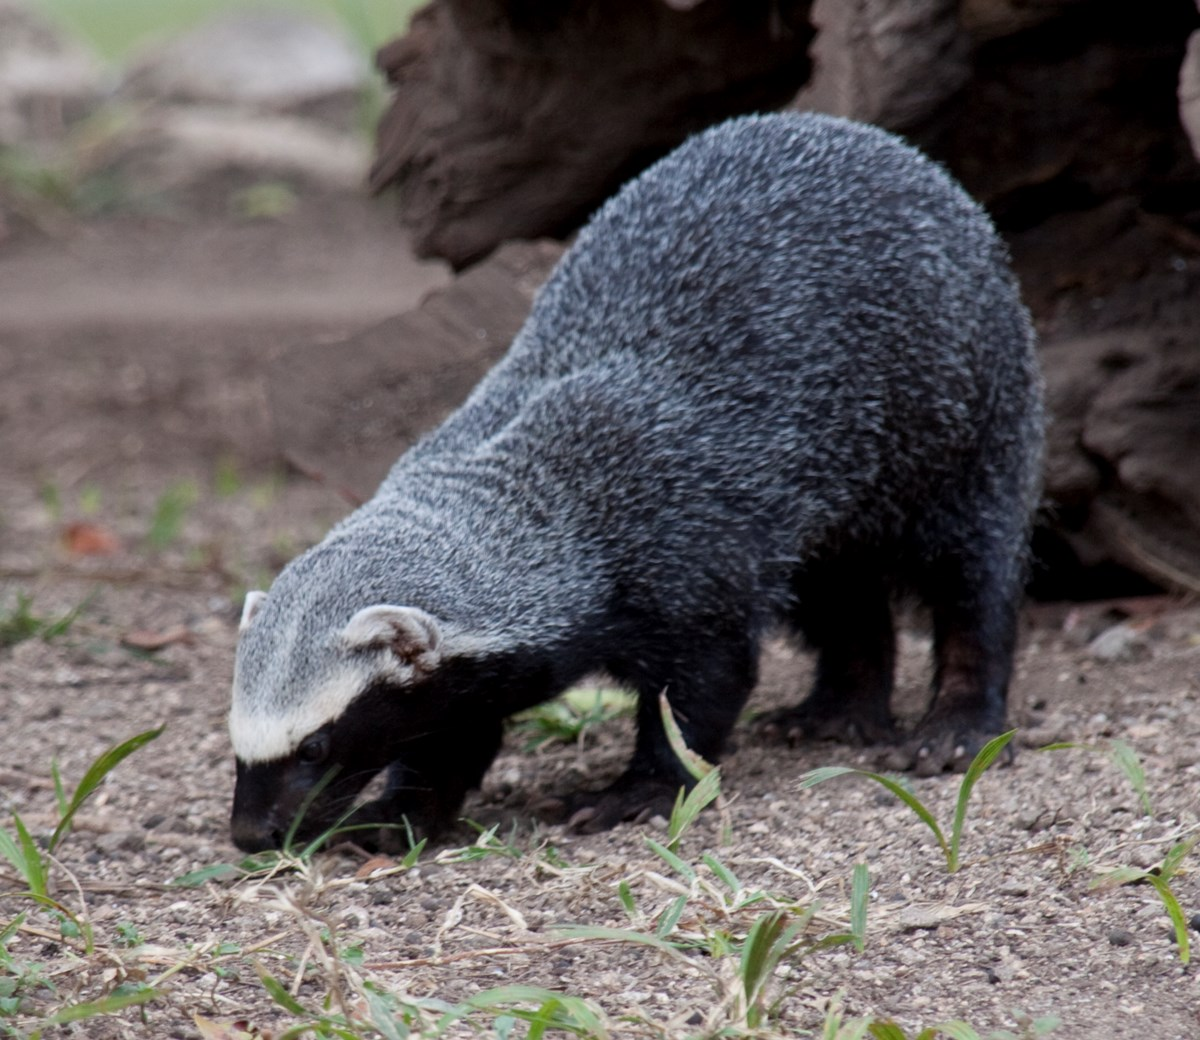 a small badger-like animal with a gradation of black, white, and gray fur. Its nose is to the ground